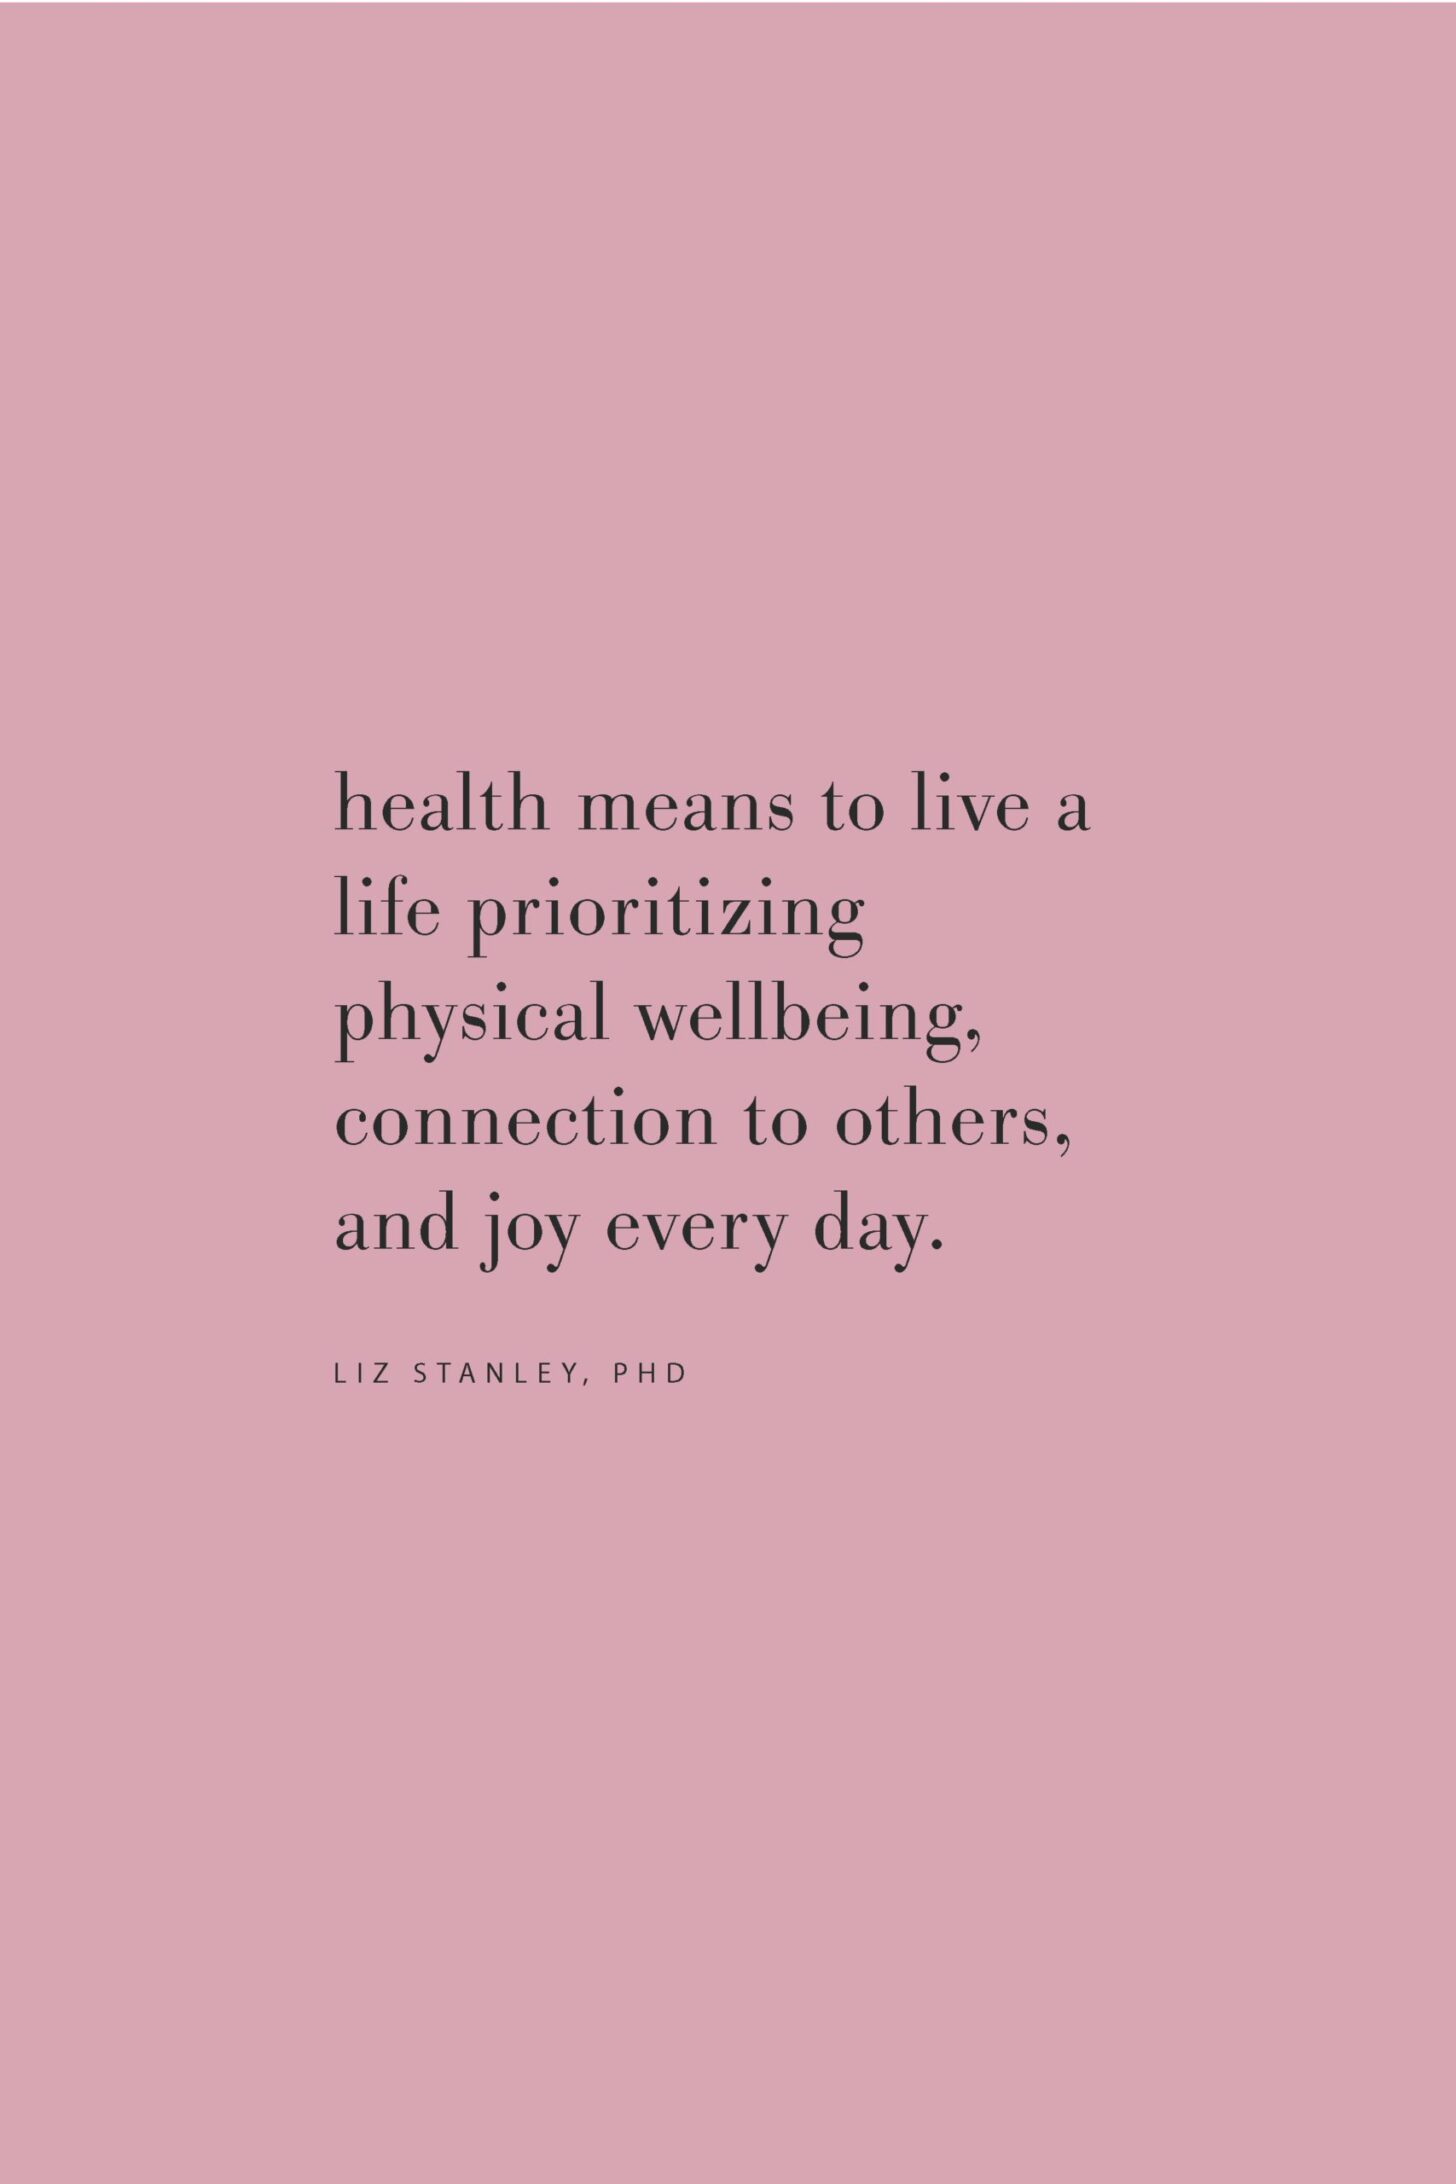 Quote on heath and prioritizing wellness, connection, and joy by Dr. Liz Stanley on the Feel Good Effect Podcast. #realfoodwholelife #feelgoodeffectpodcast #stressquote #wellnessquote #inspirationalquote #positivityquote #motivationalquote #resiliencequote #joyfulquote #happinessquote